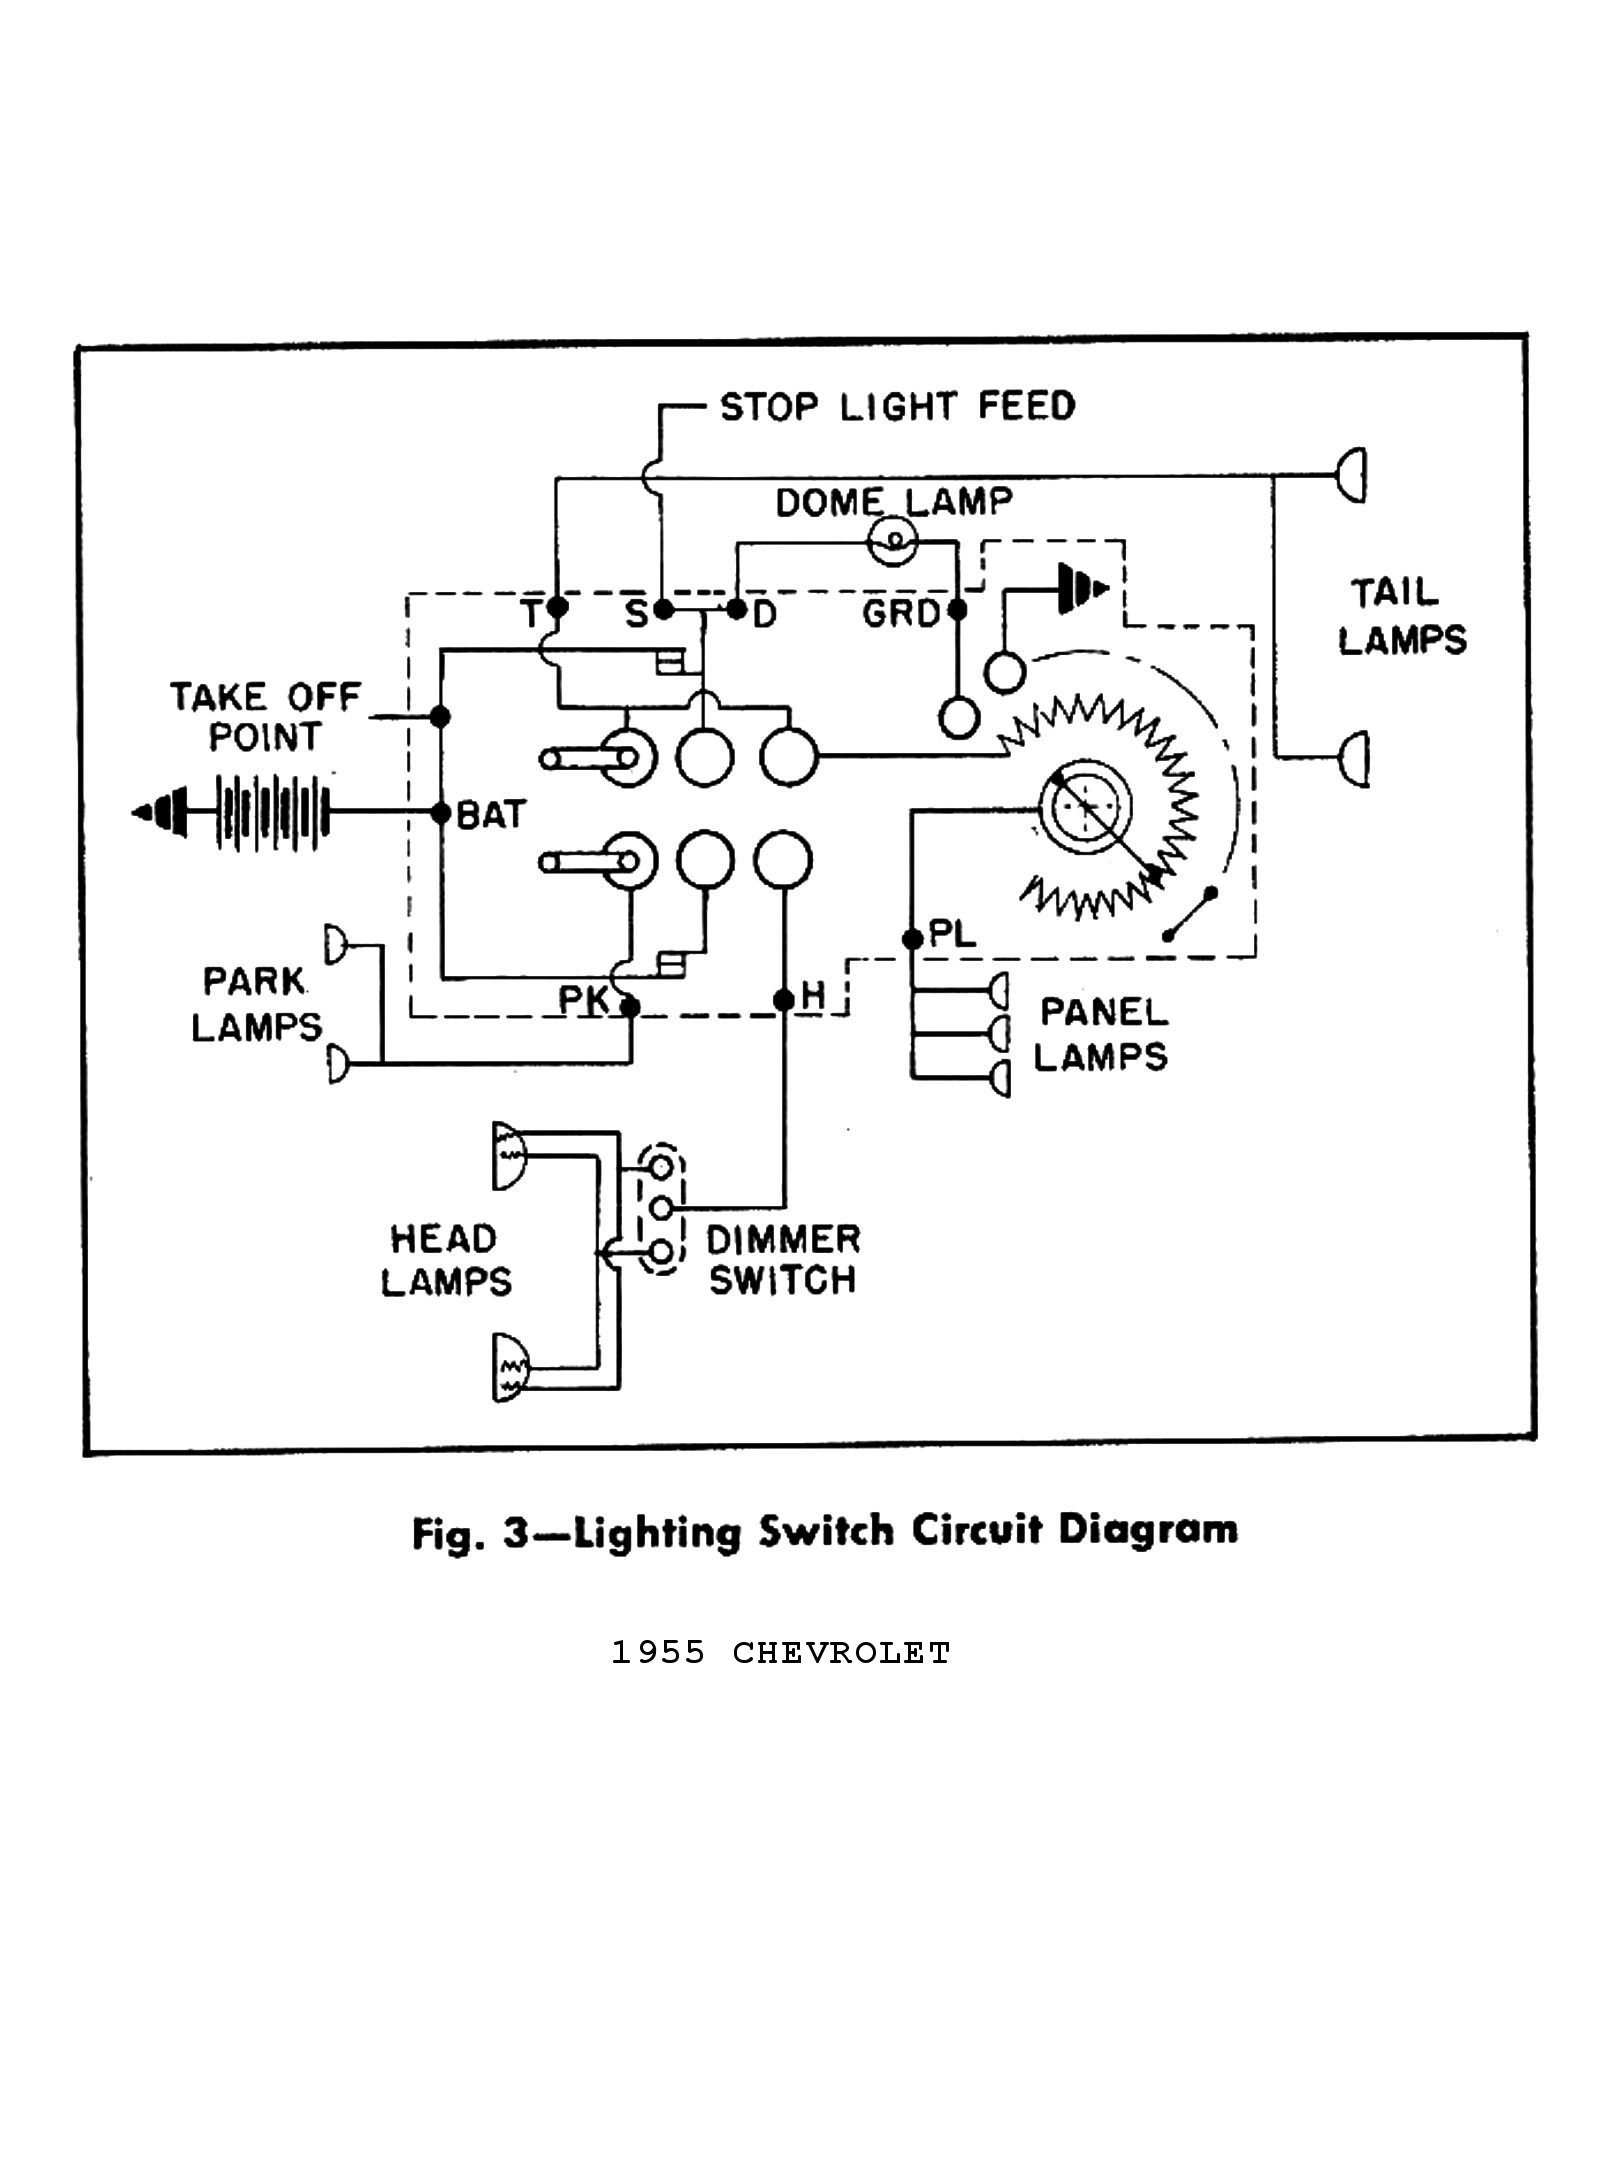 Ignition Wiring On A 1950 Chevy | Wiring Diagram on chevy c10 seats, chevy ignition switch wiring diagram, chevy truck wiring diagram, chevy s10 pickup wiring diagram, 67 camaro wiring harness diagram,